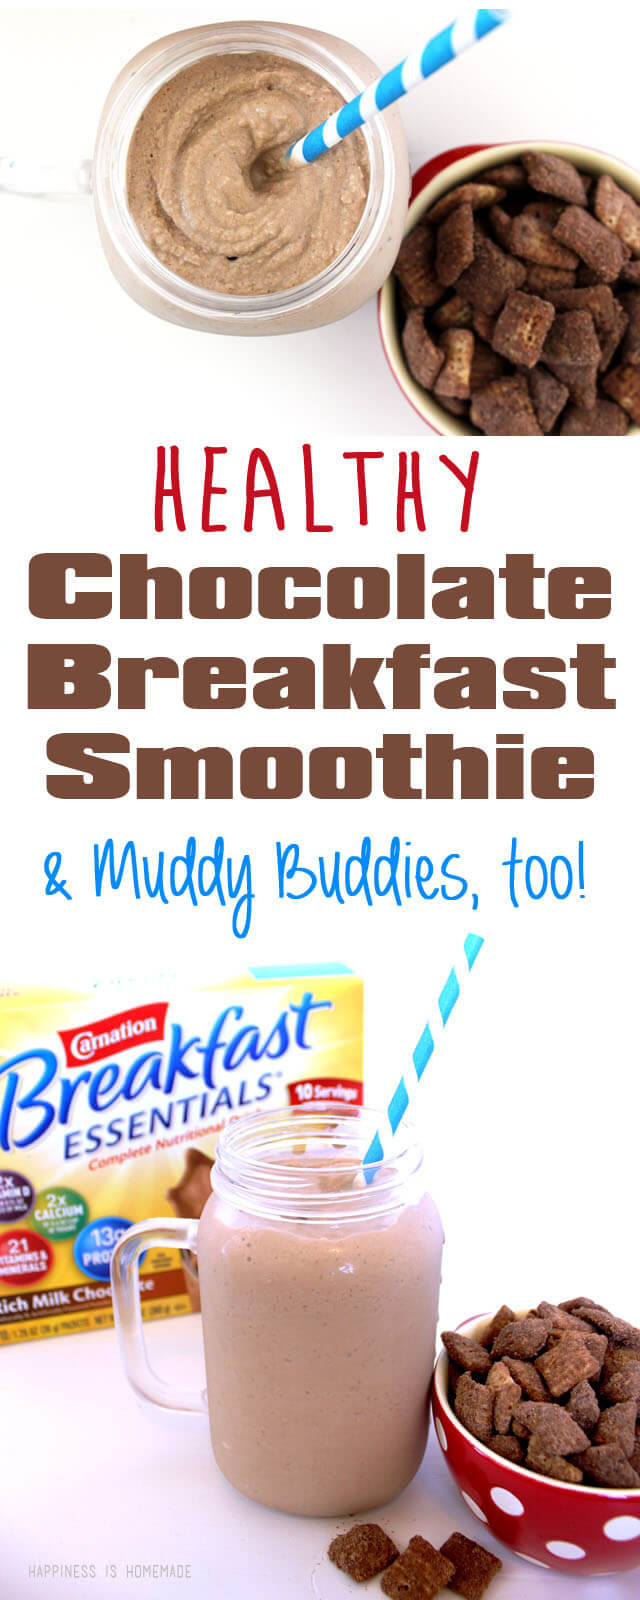 Is Breakfast Essentials Healthy  Healthy Chocolate Breakfast Smoothie & Muddy Bud s Mix